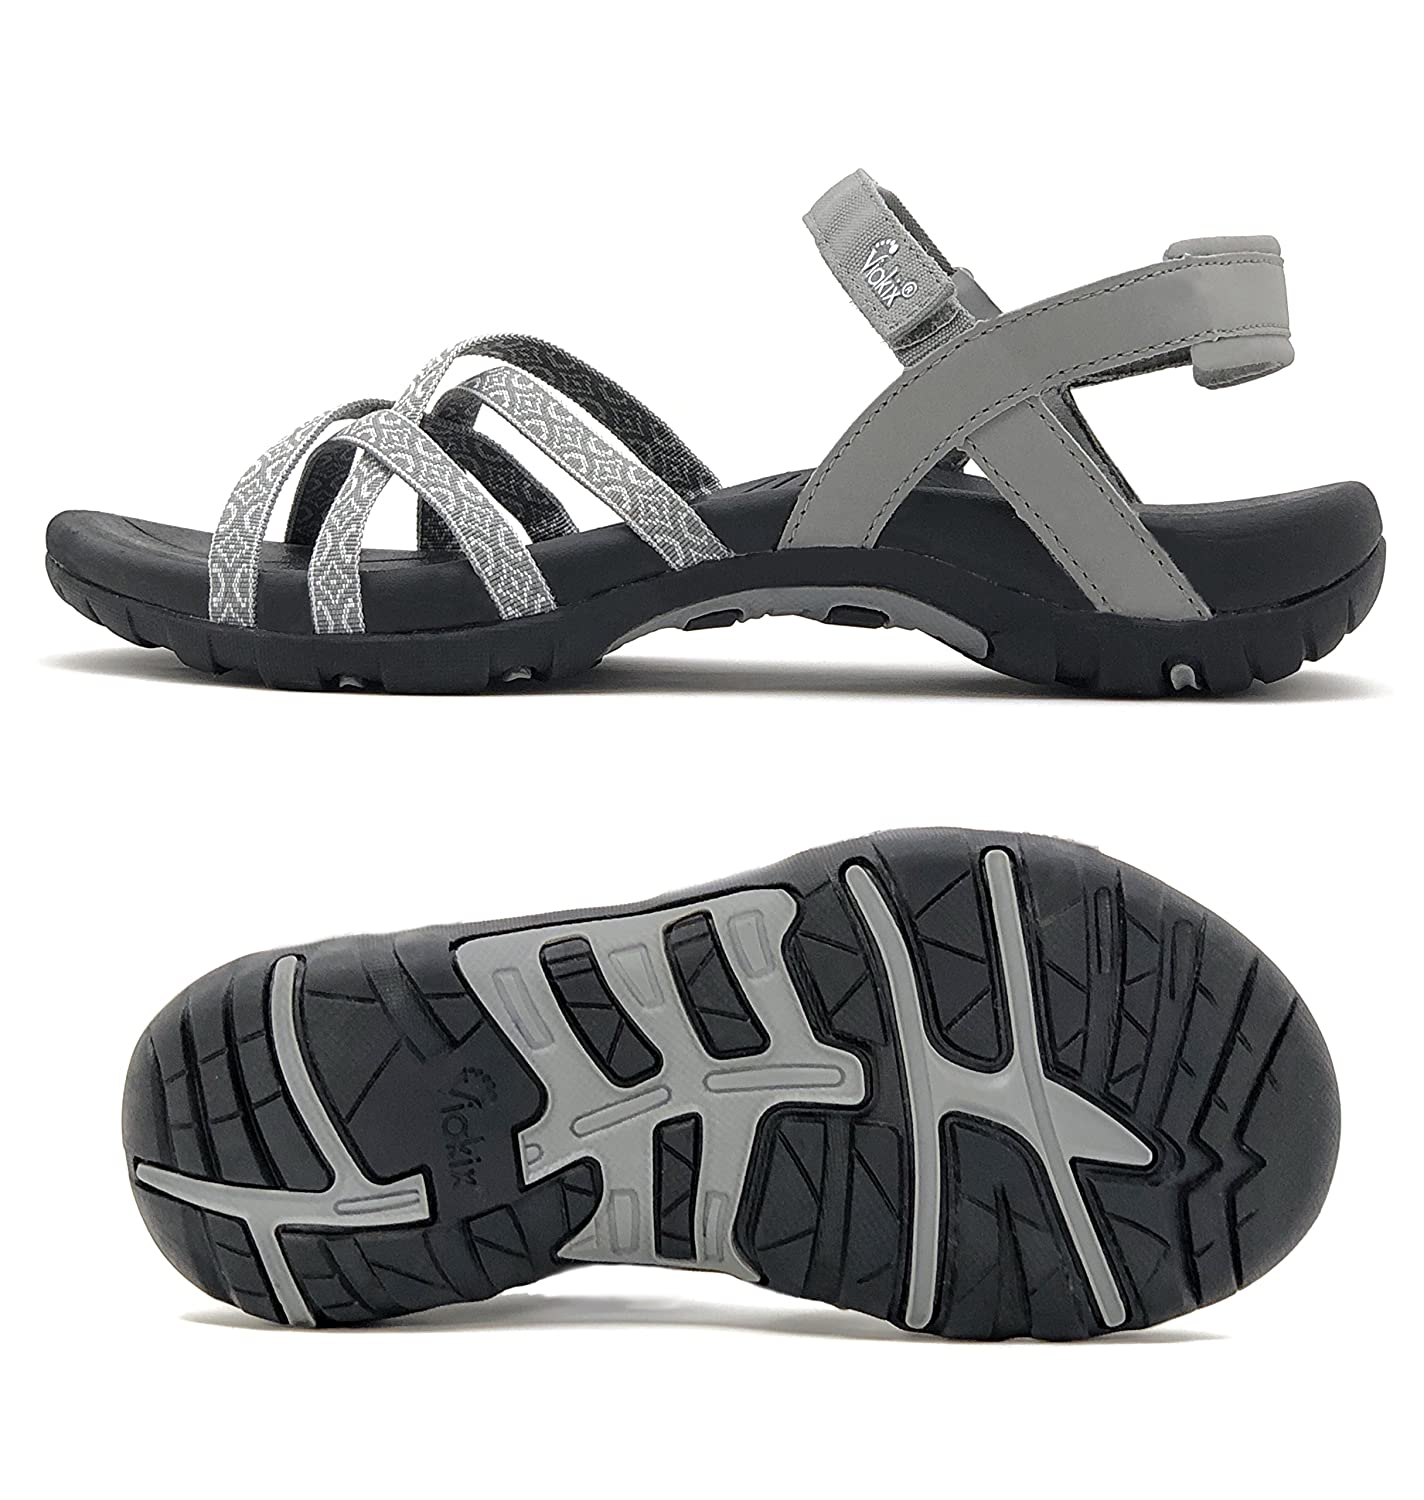 Viakix Walking Sandals for Women – Comfortable Athletic Stylish Shoes for Hiking Outdoors Beach Water Medium Width